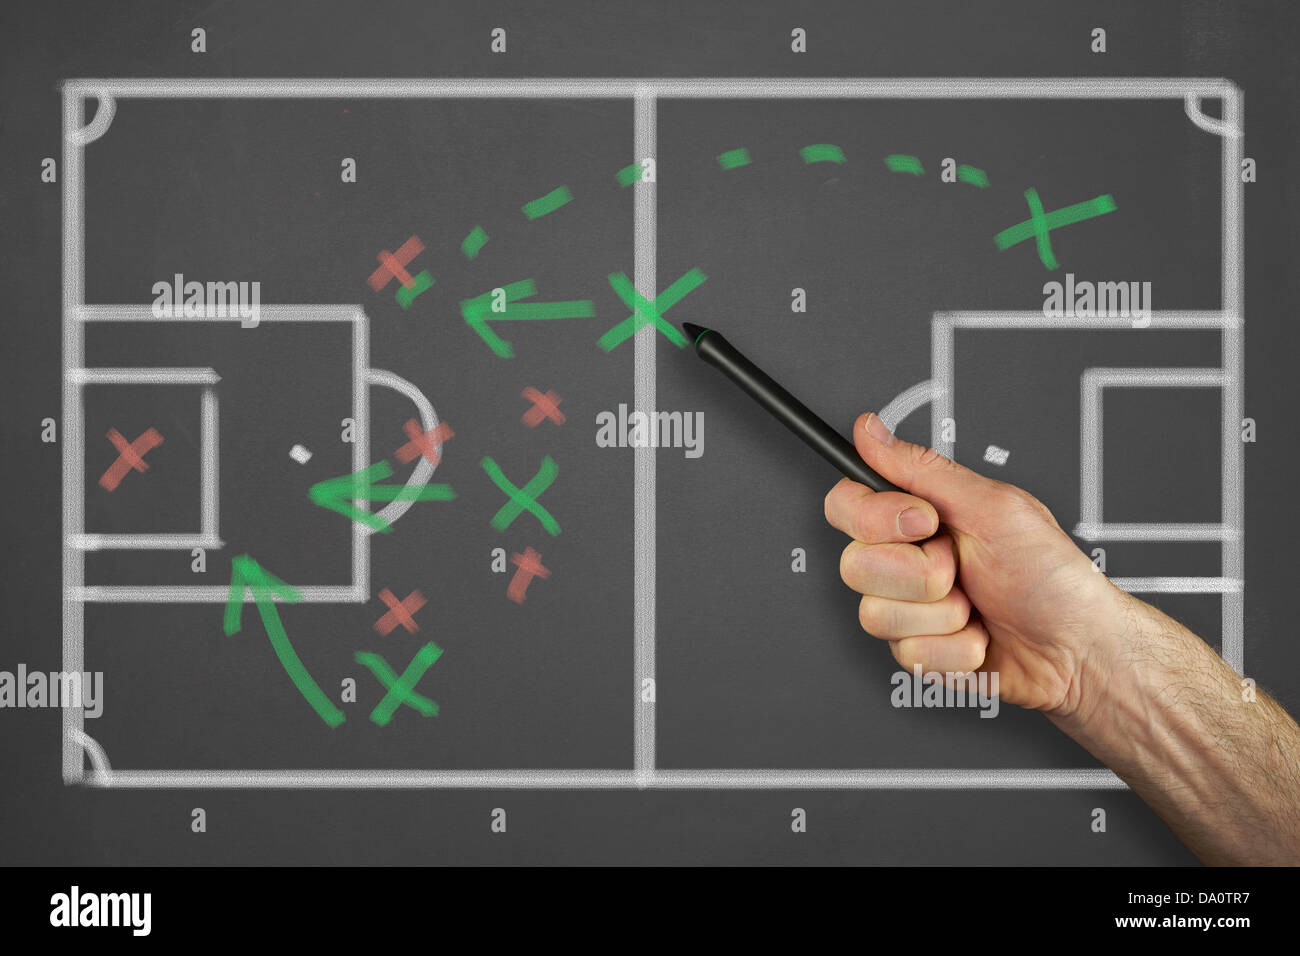 Mans hand pointing to a tactics message on a chalkboard. - Stock Image